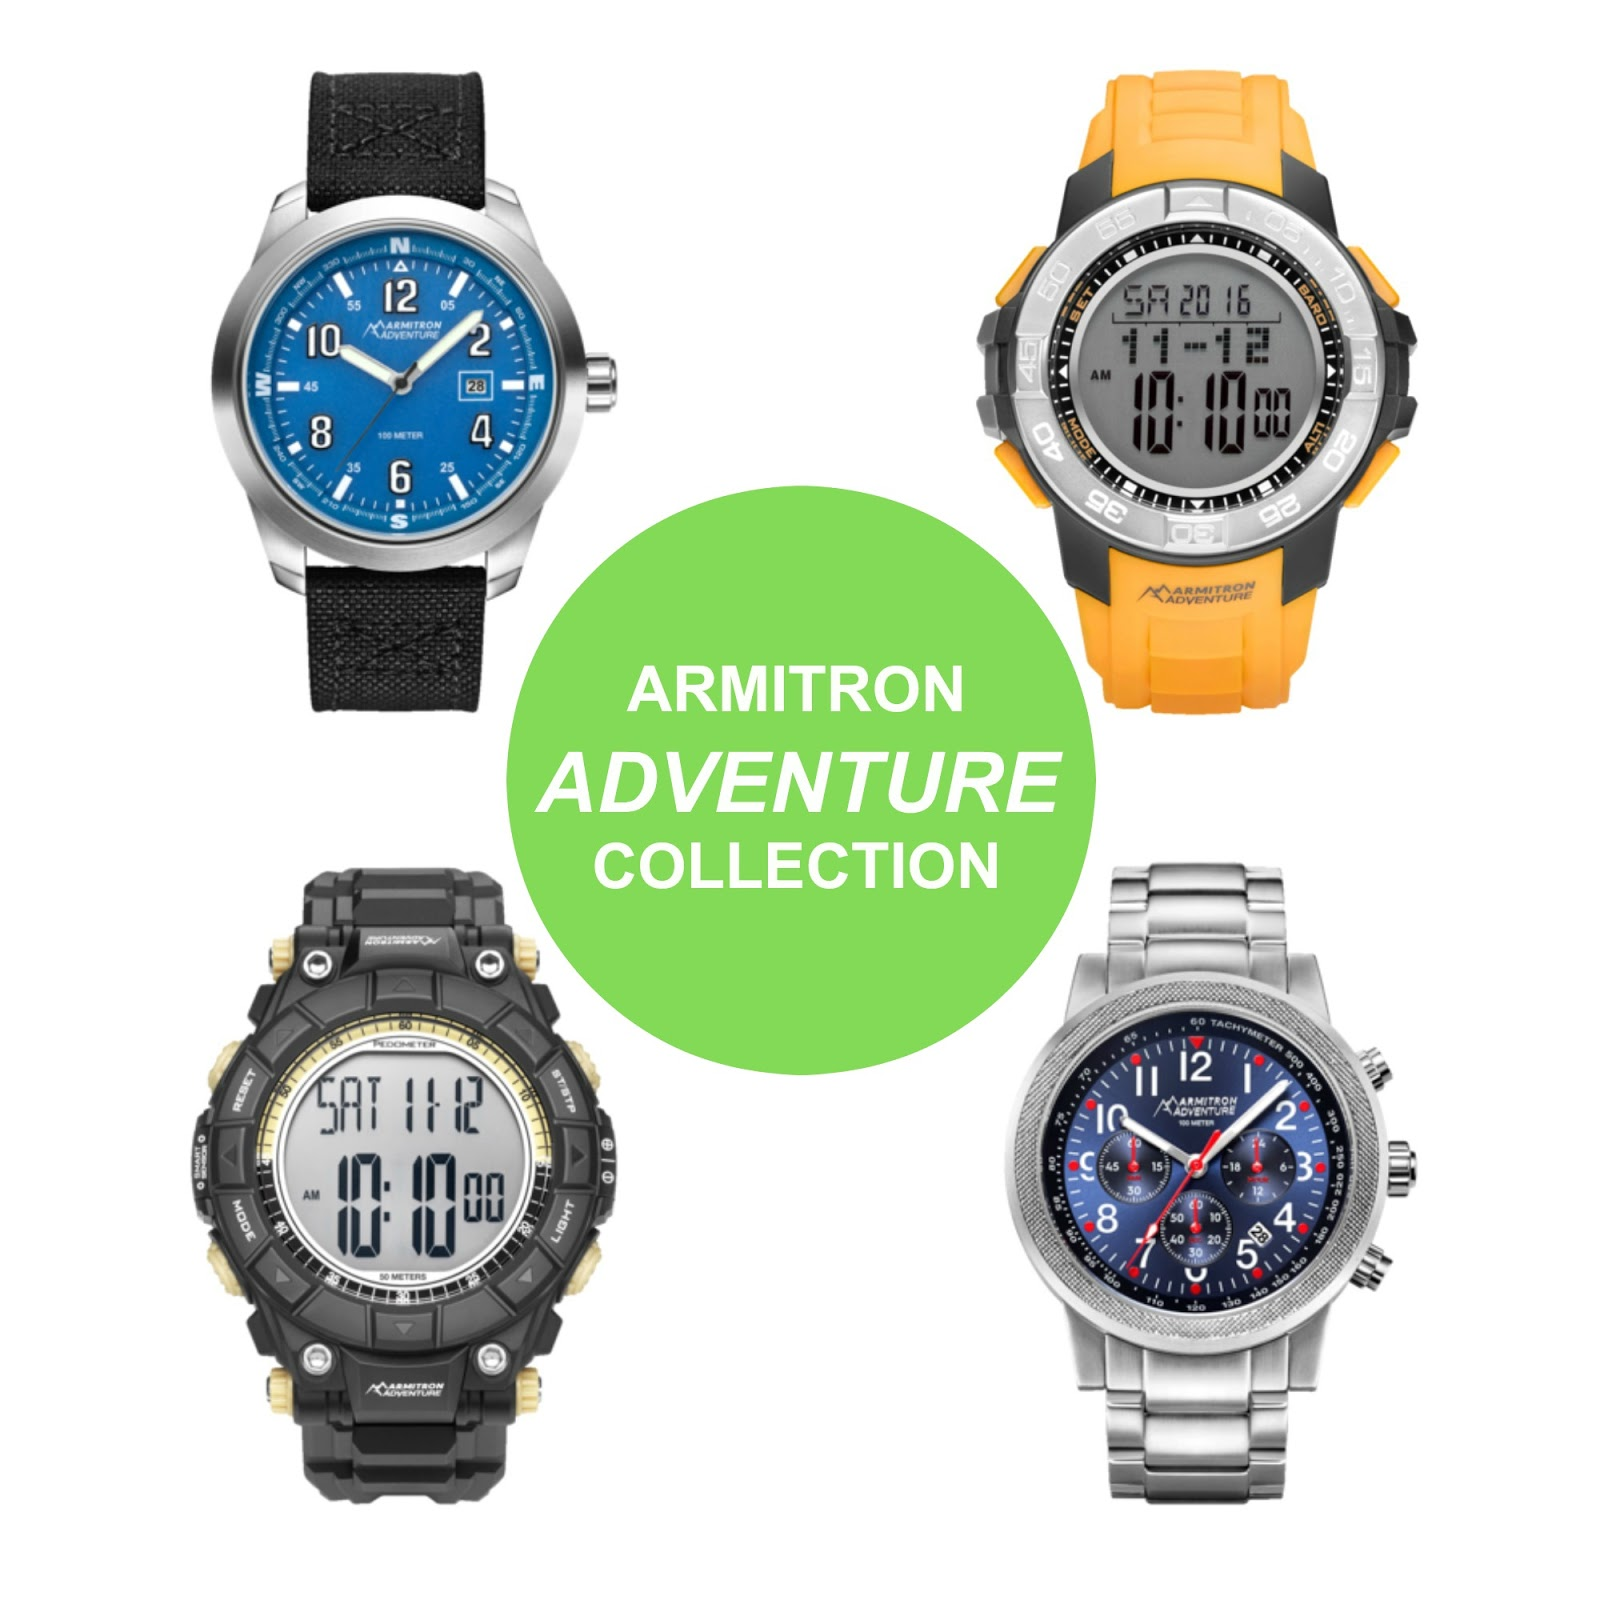 v fenix the garmin gearopen super adventure width battle full of vqpx inline watches gears